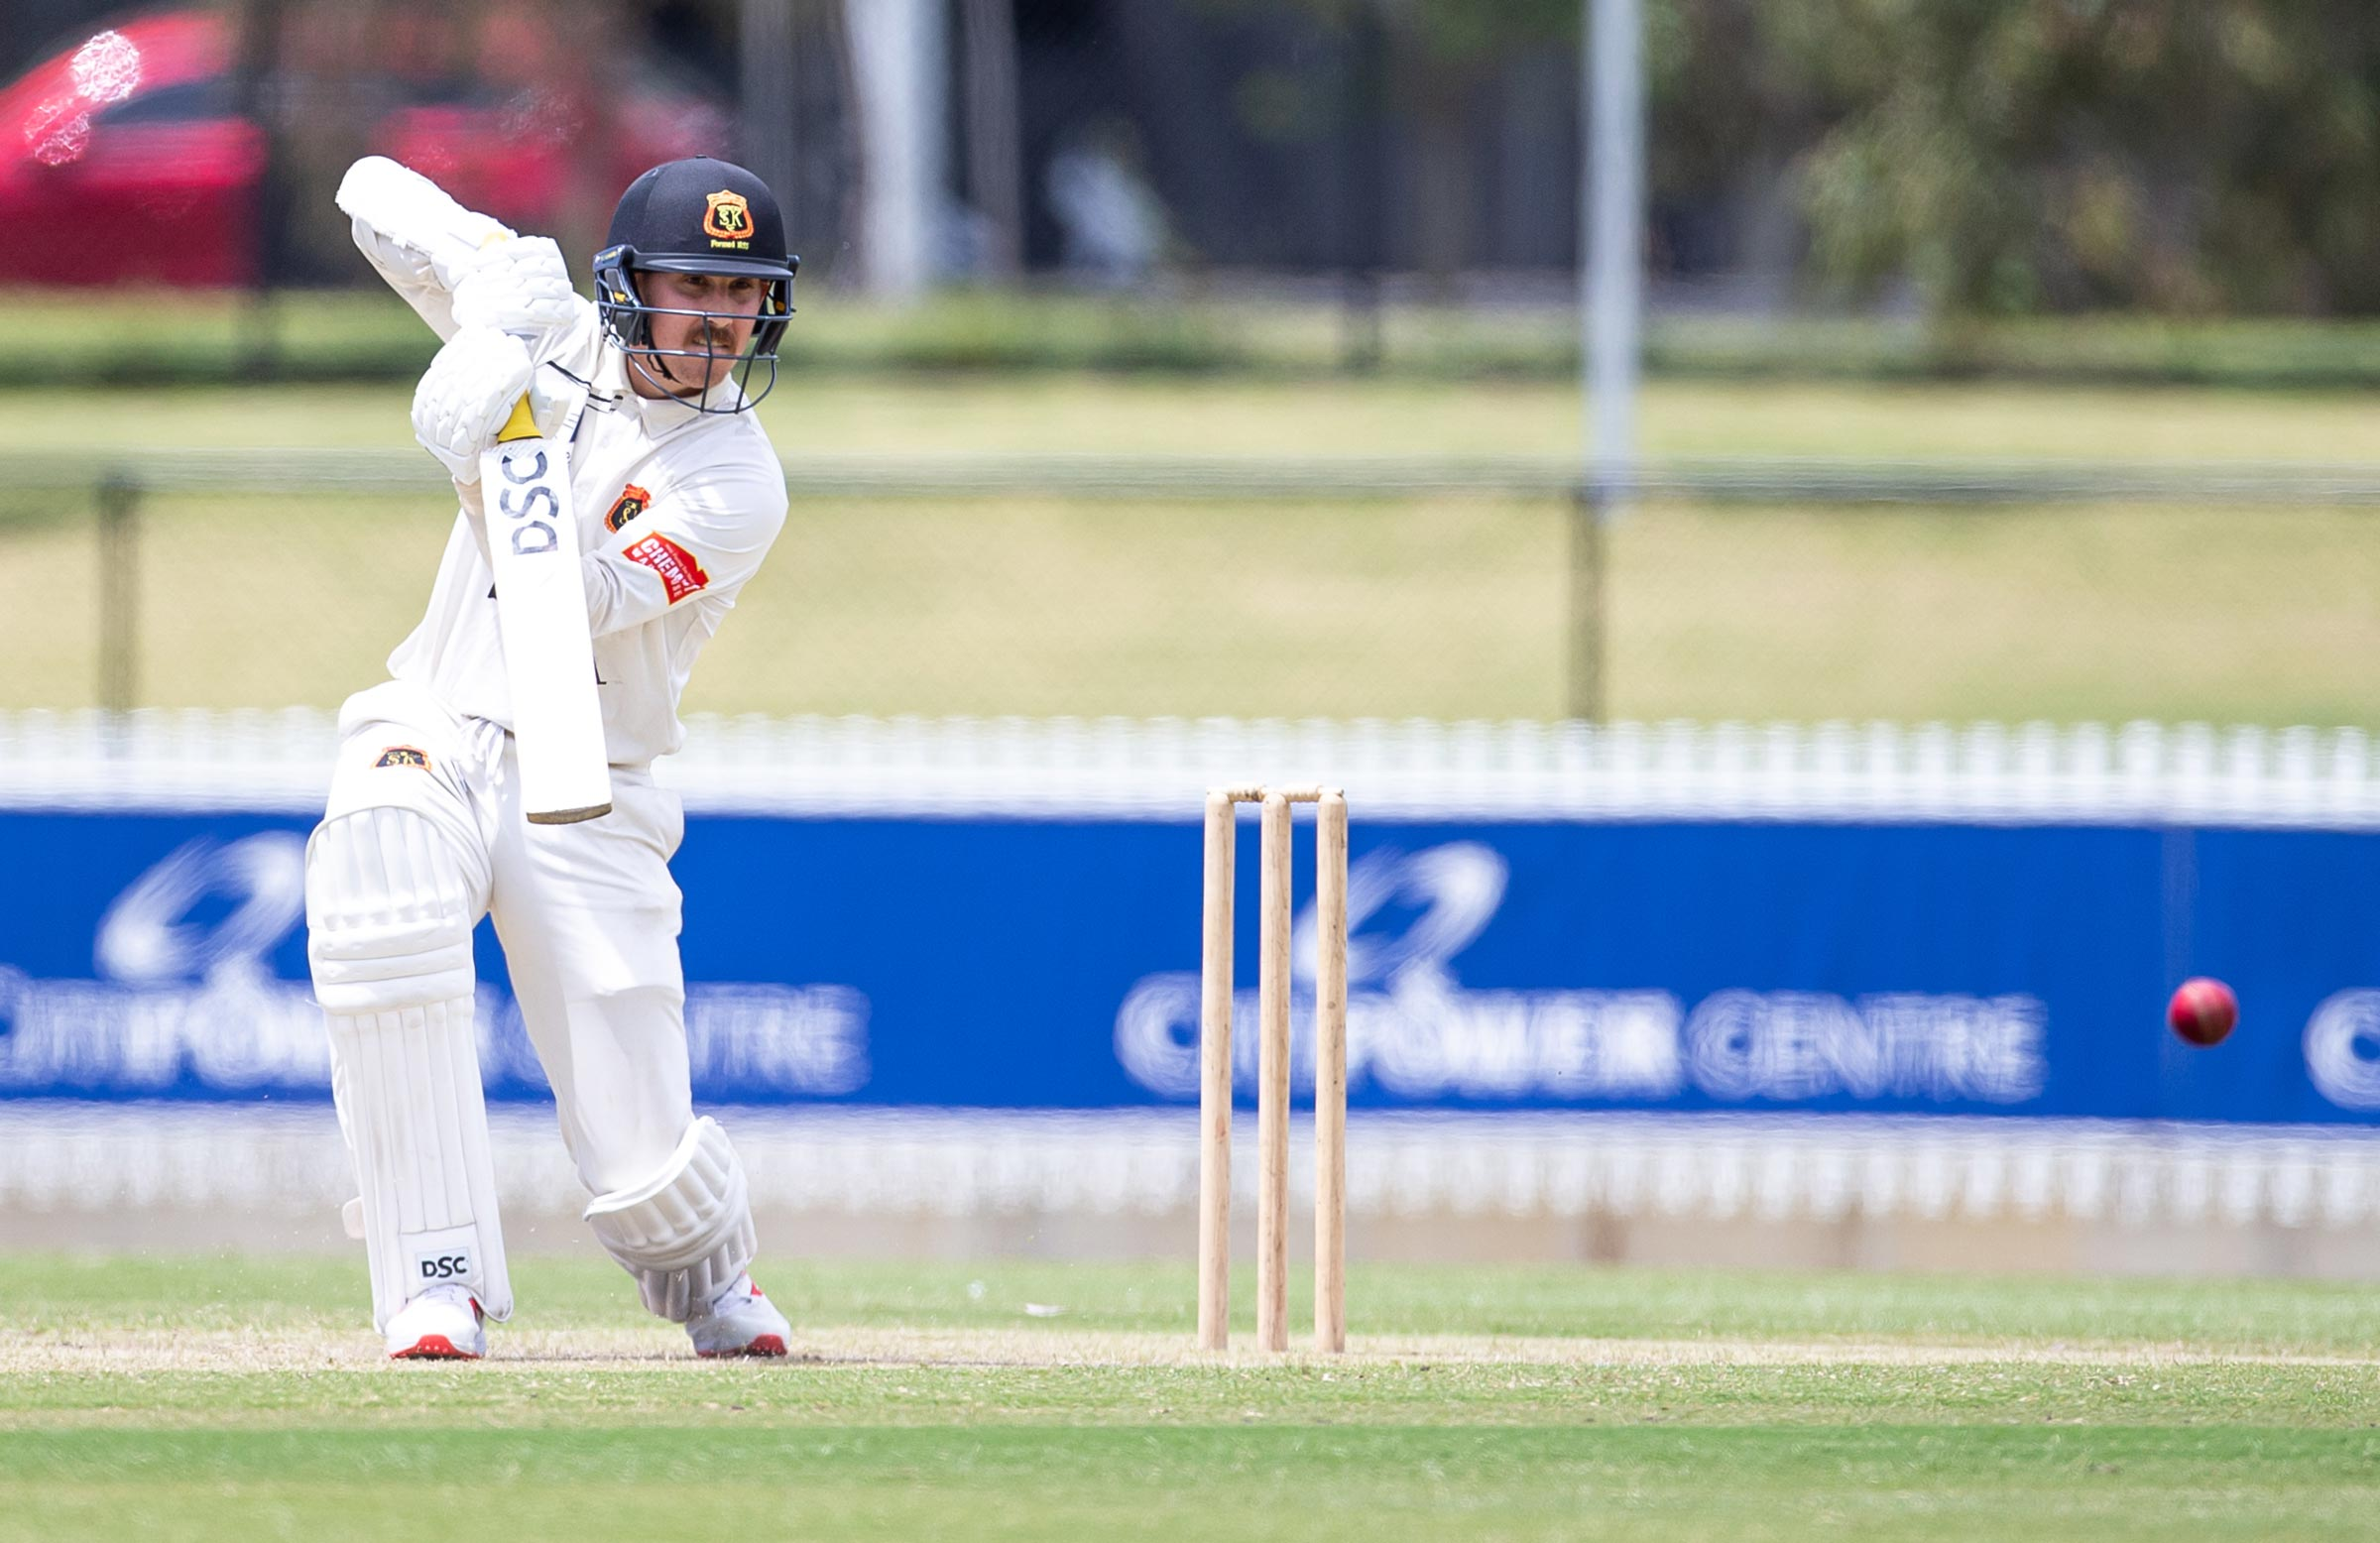 Maddinson hit a stylish half-century for St Kilda // Arj Giese Photography